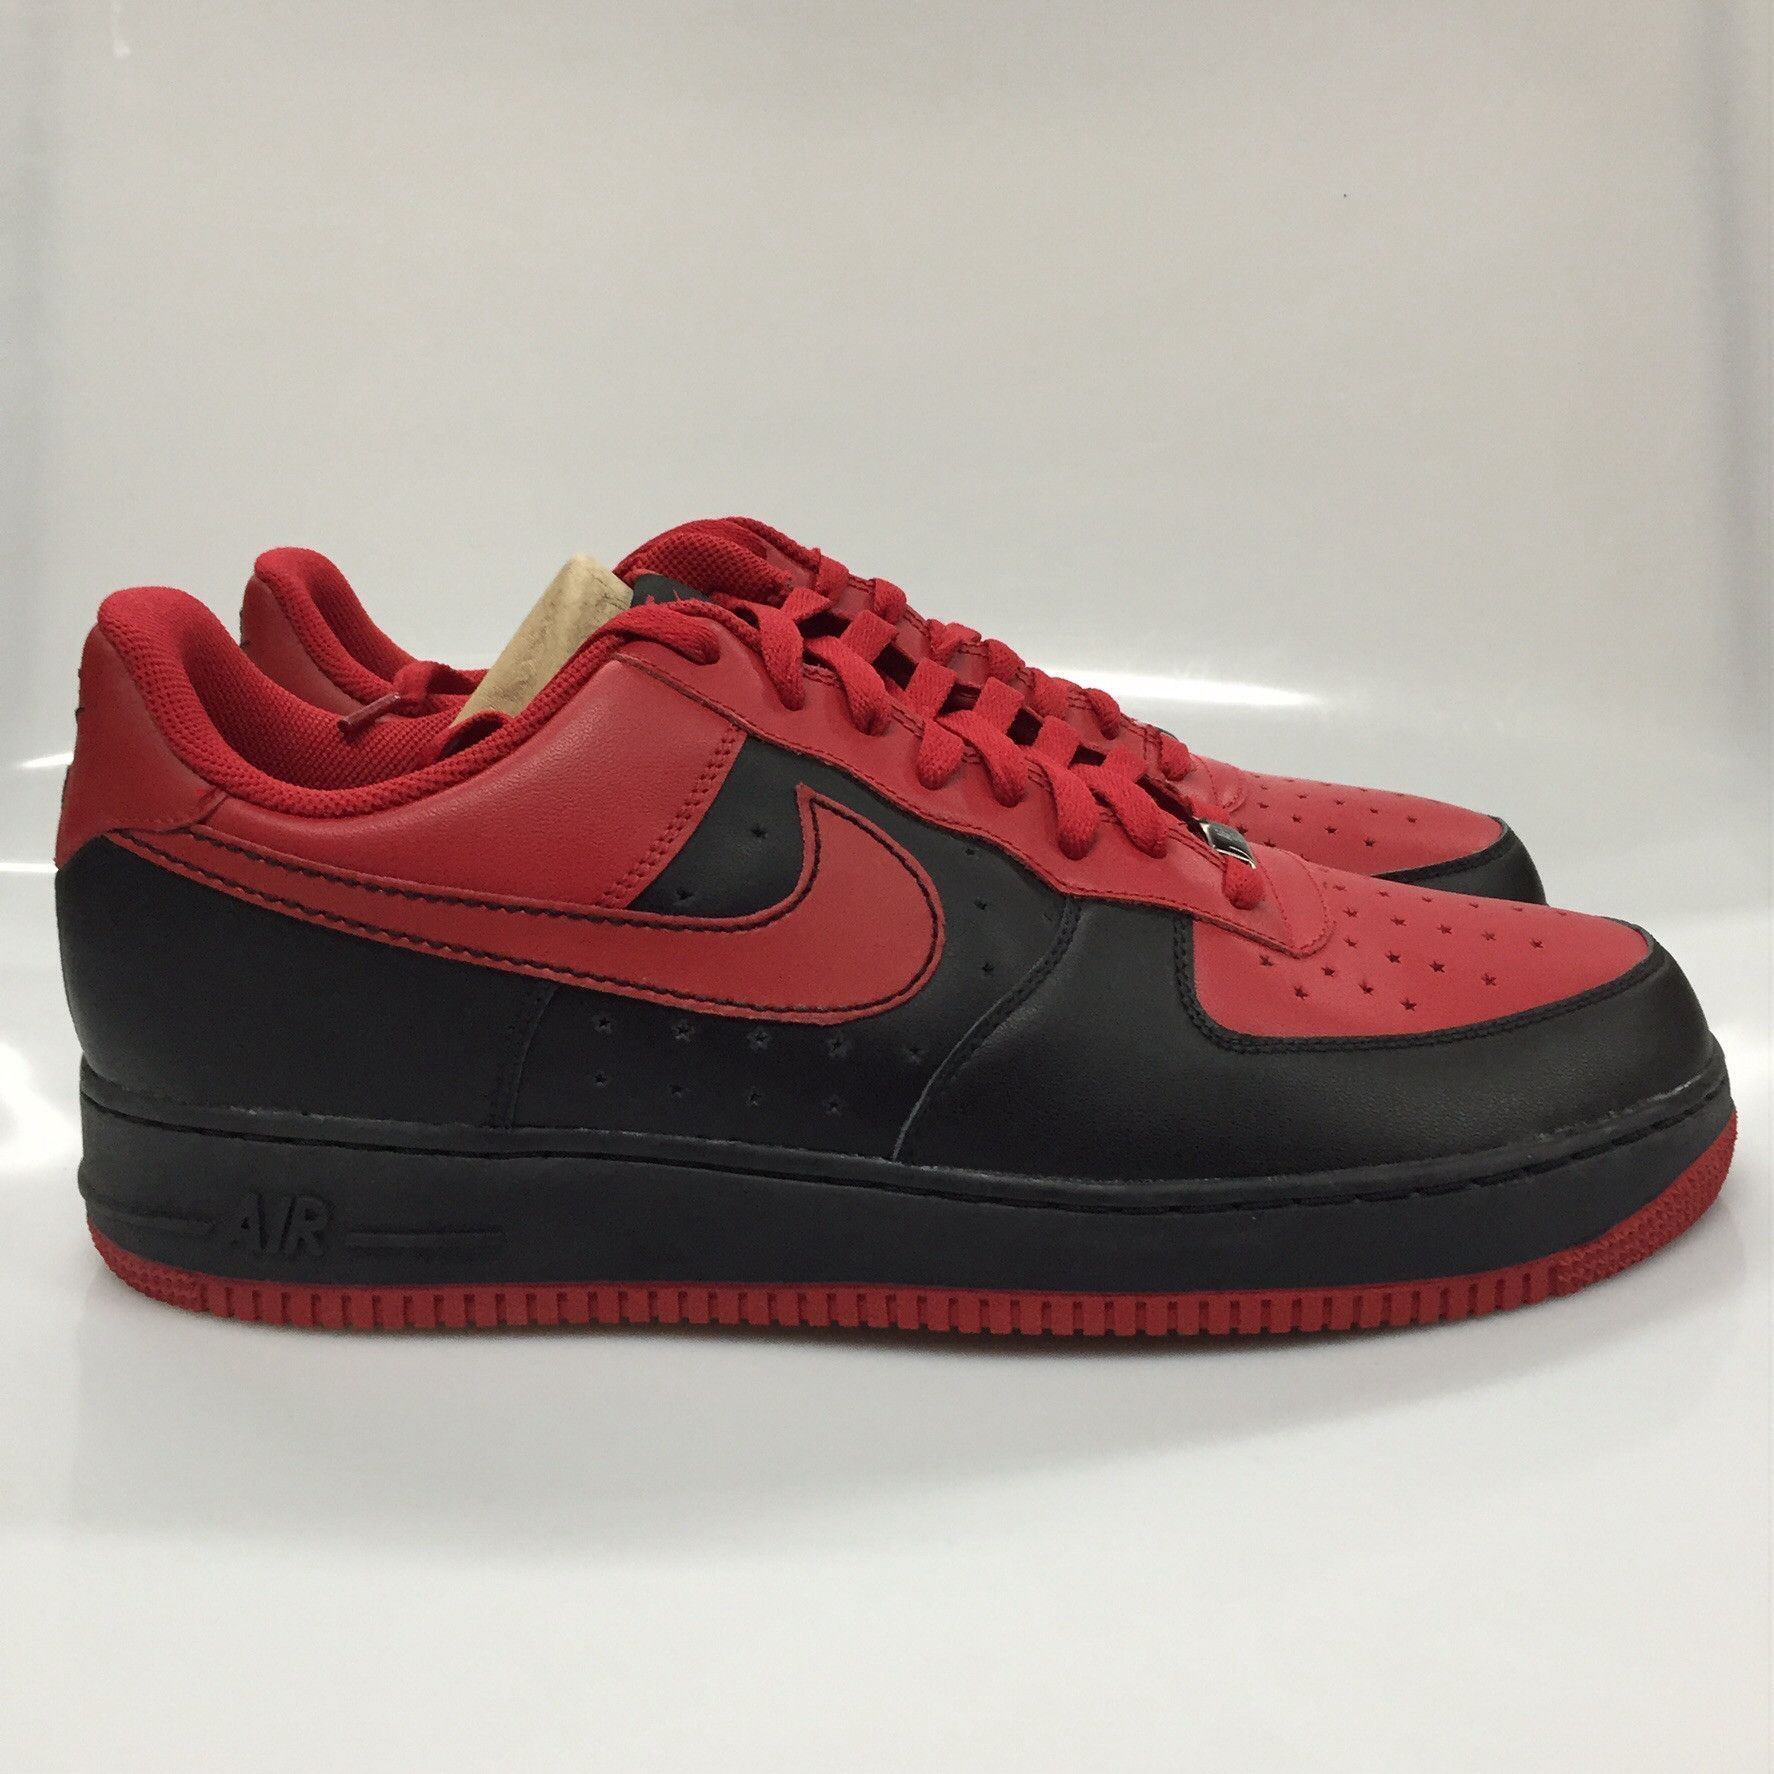 CONDITION Brand New COLORWAY BlackRed SHIPPING 15